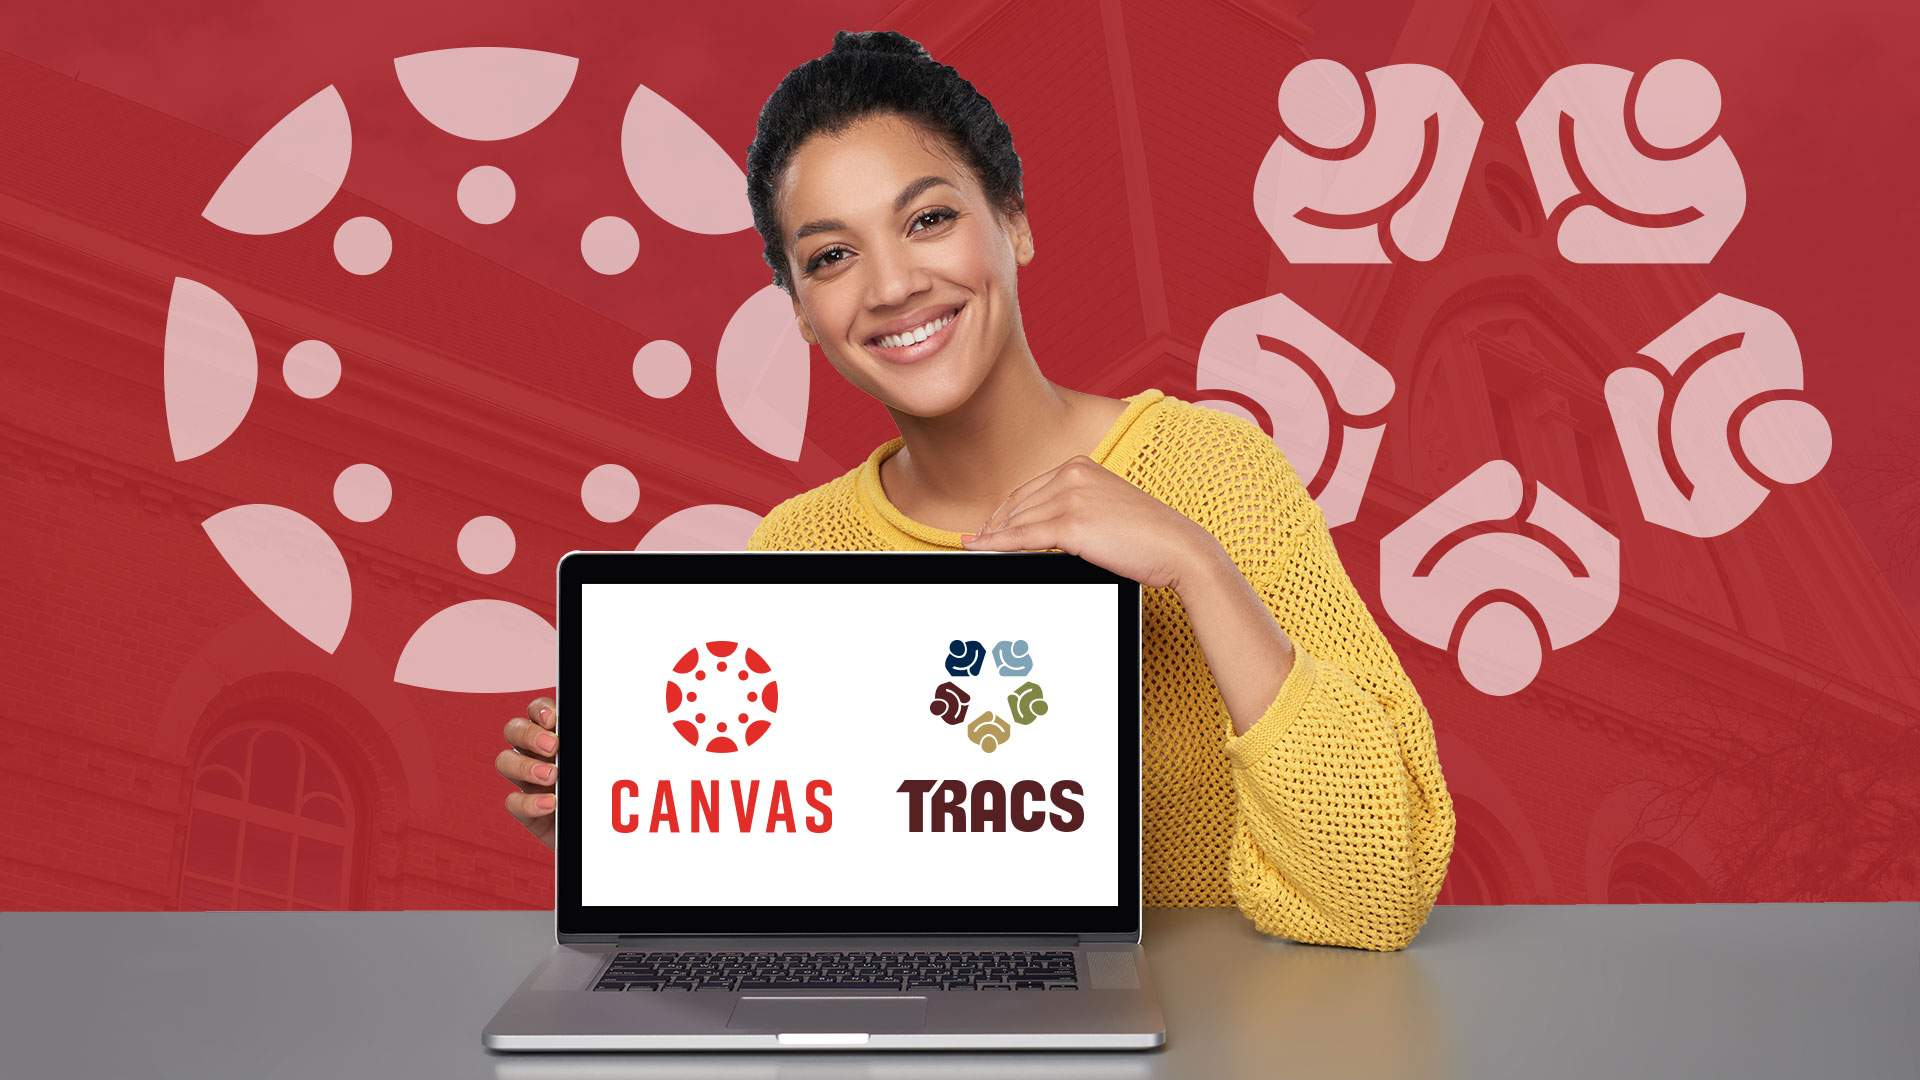 A student smiles and has a laptop with the TRACS and Canvas logos.